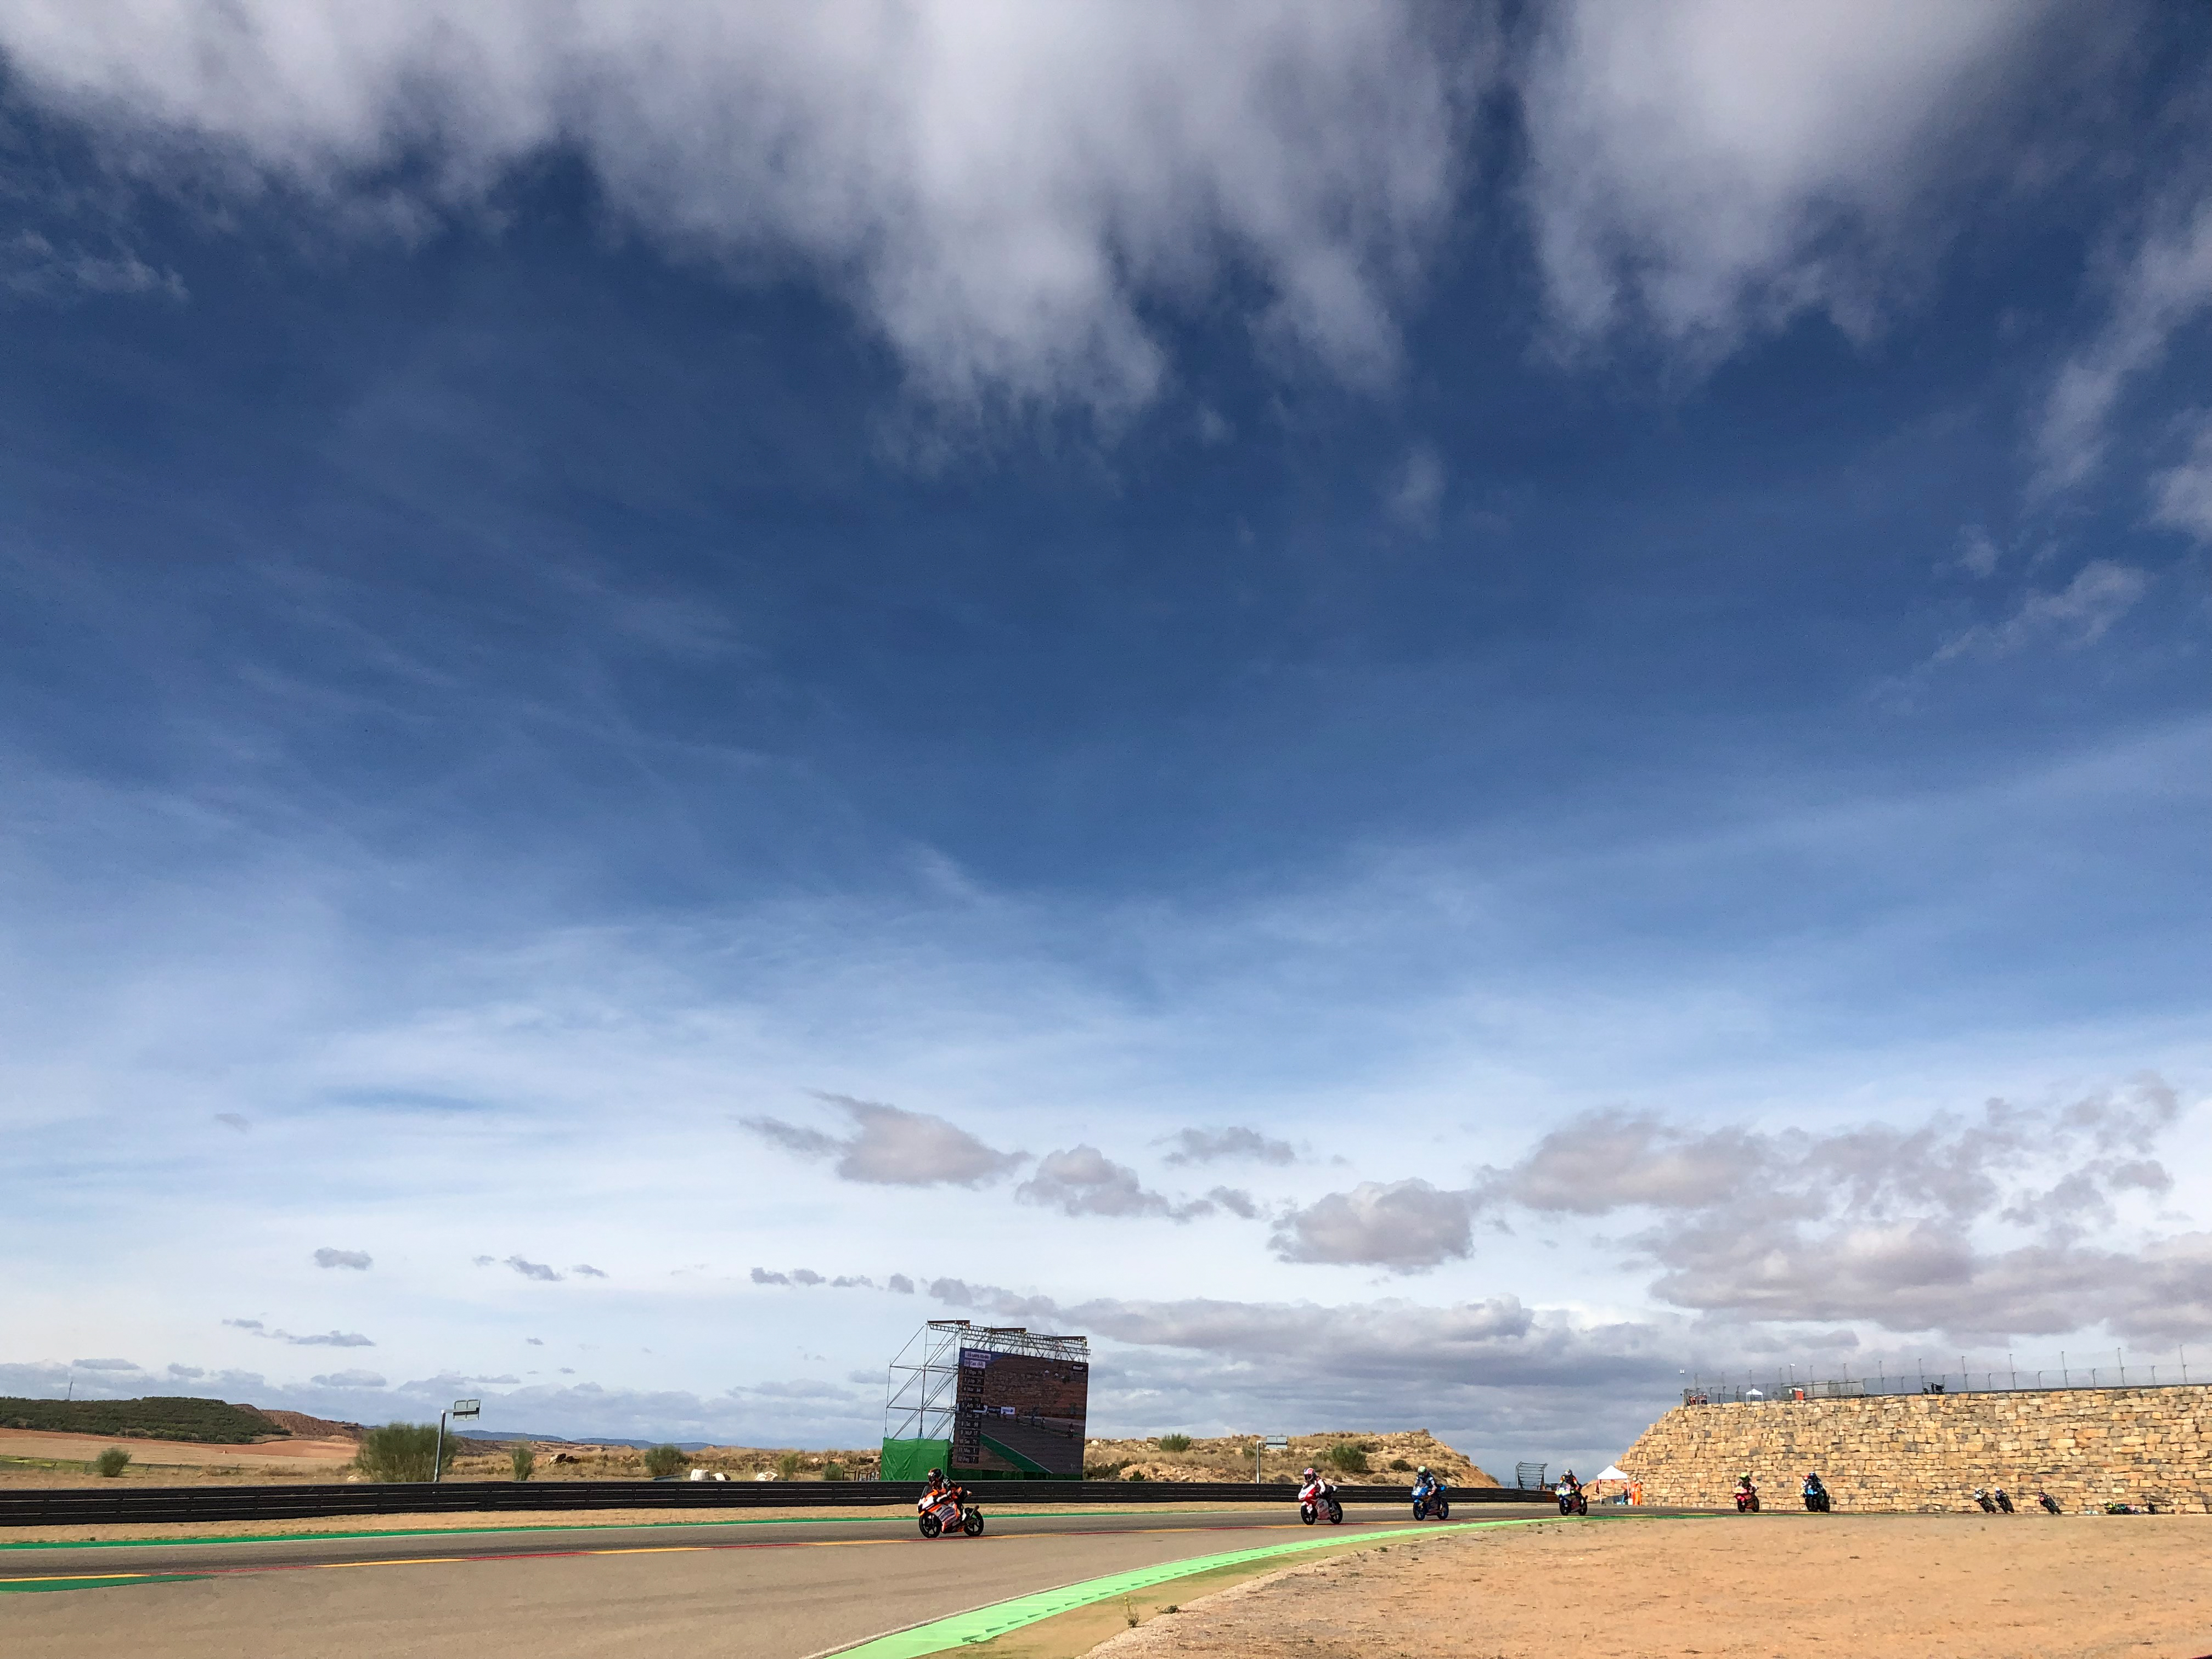 The Aragon circuit is situated in rural Spain - the near-arid conditions make for a perfect setting